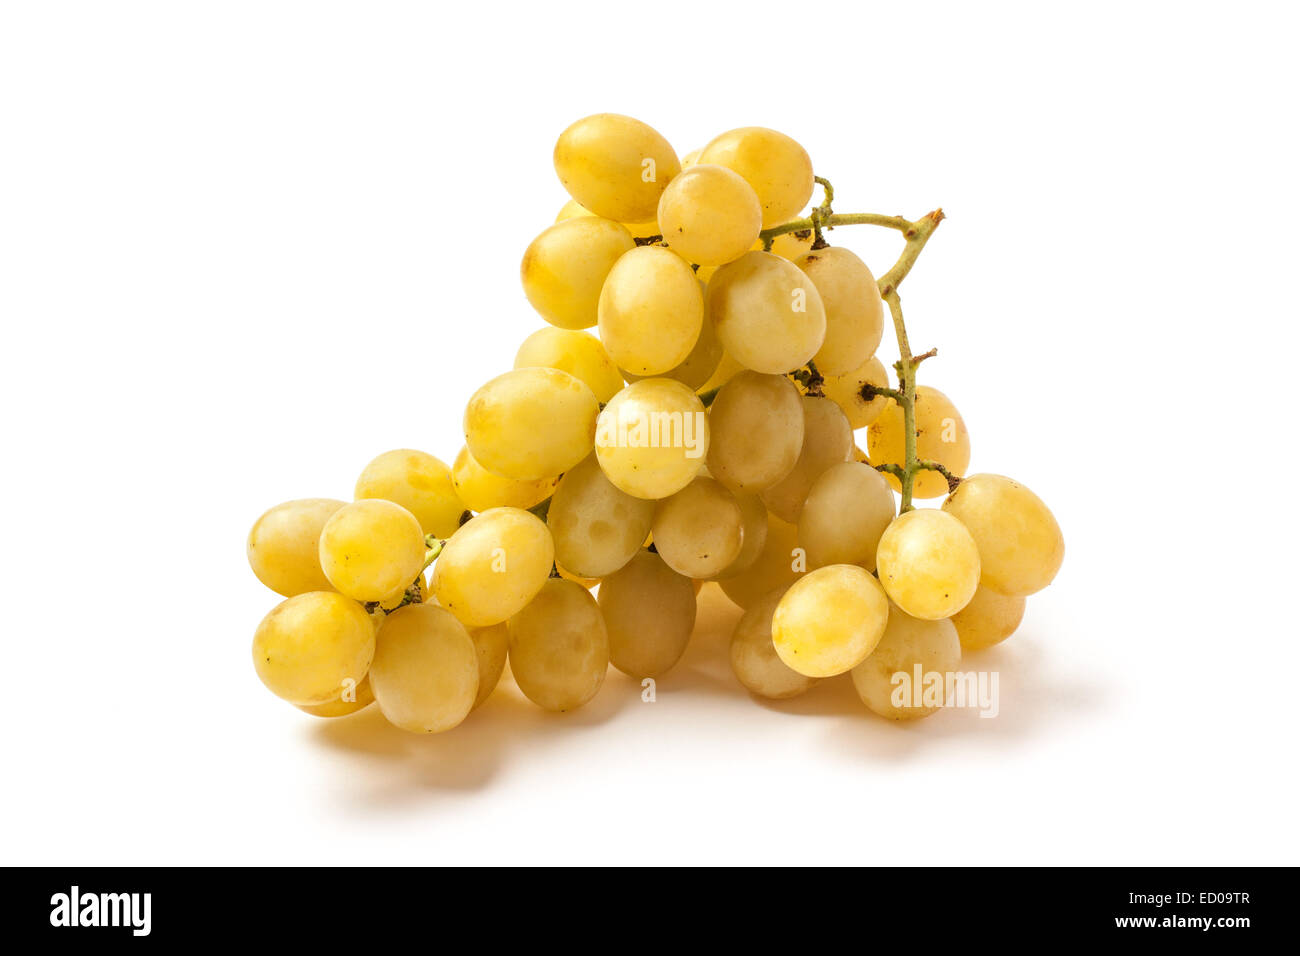 Bunch of mature white grape isolated on white. - Stock Image